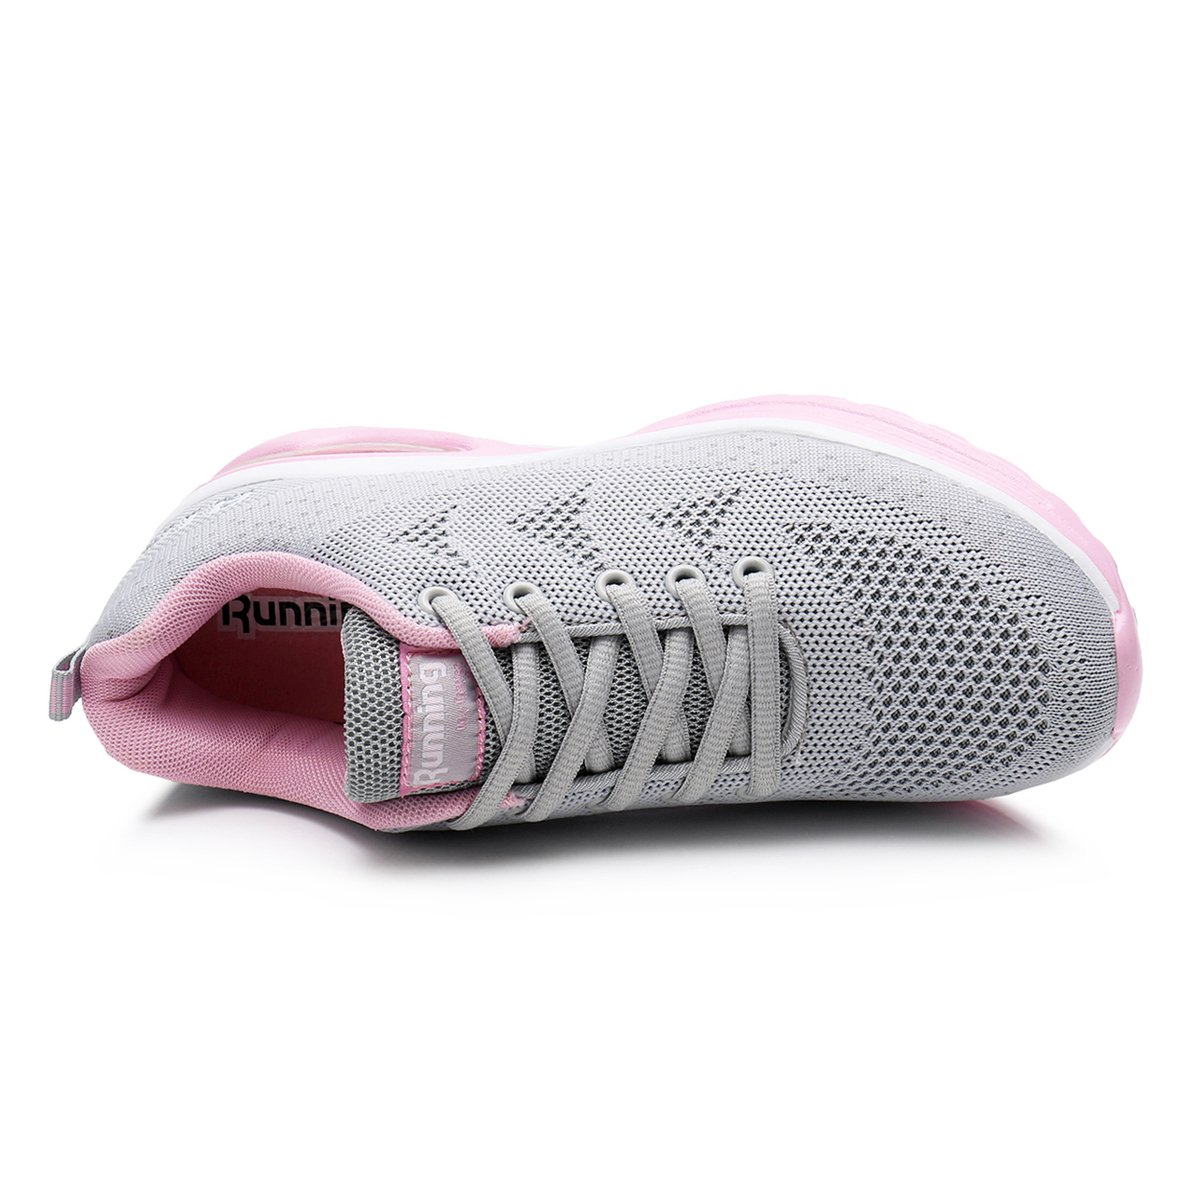 JARLIF Women's Lightweight Athletic Running Fitness Shoes Breathable Sport Air Fitness Running Gym Jogging Sneakers US5.5-10 B07DCHJLL2 7.5 M US|Greypink 02c4a8